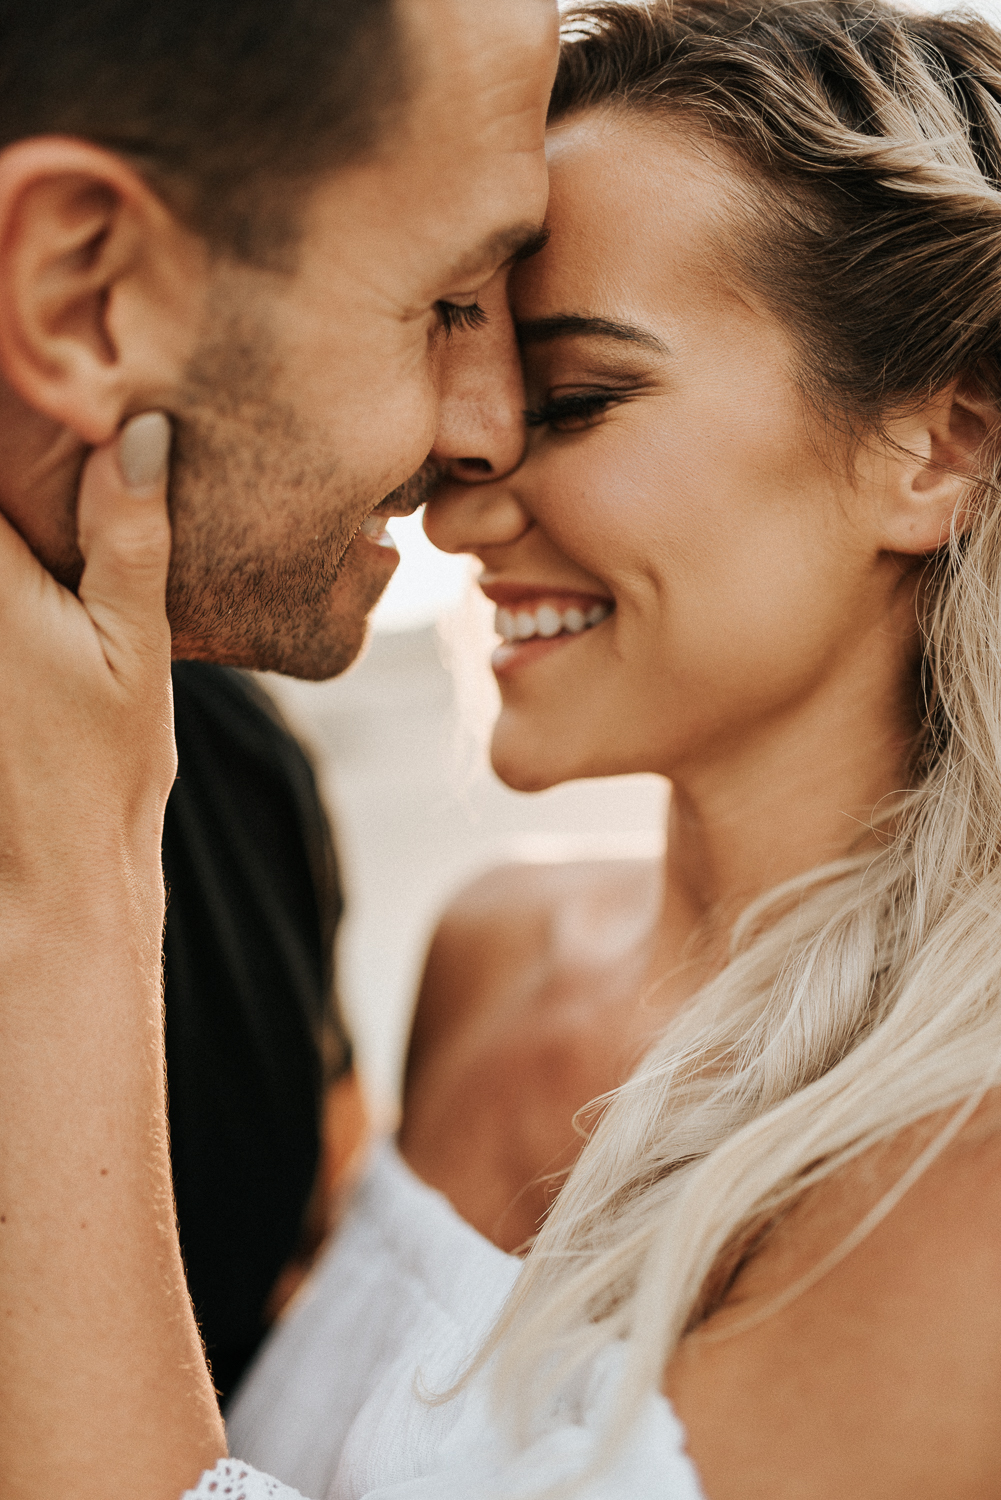 Intimate and Unconventional Engagement Photos   Morgan Ellis   PA and SC Photographer